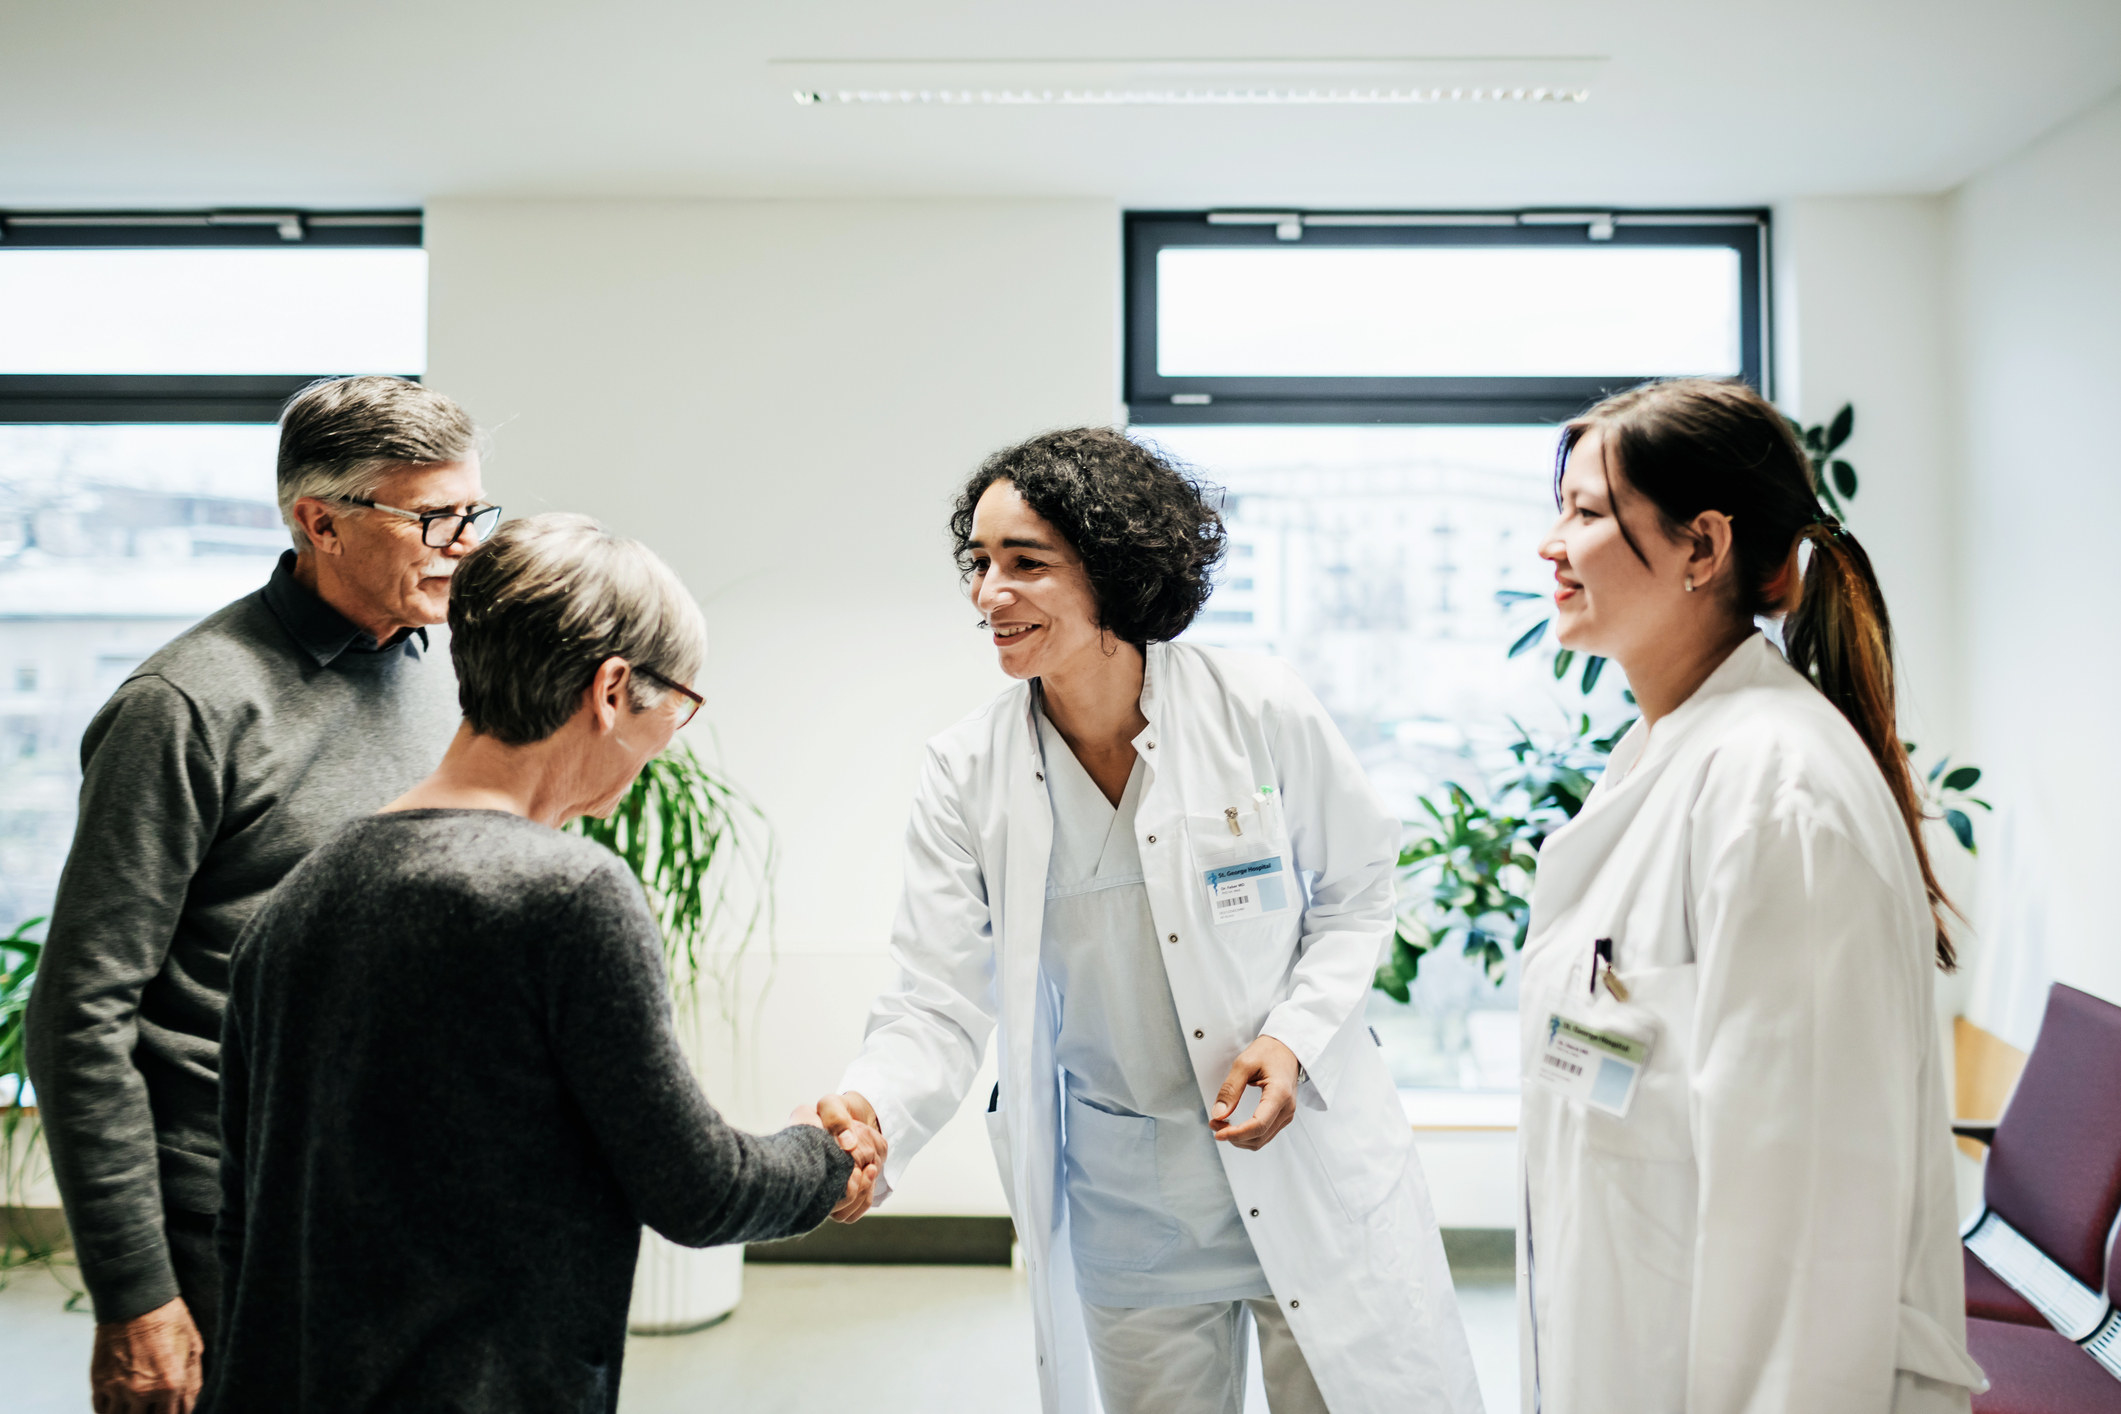 Two older people shaking hands with two doctors